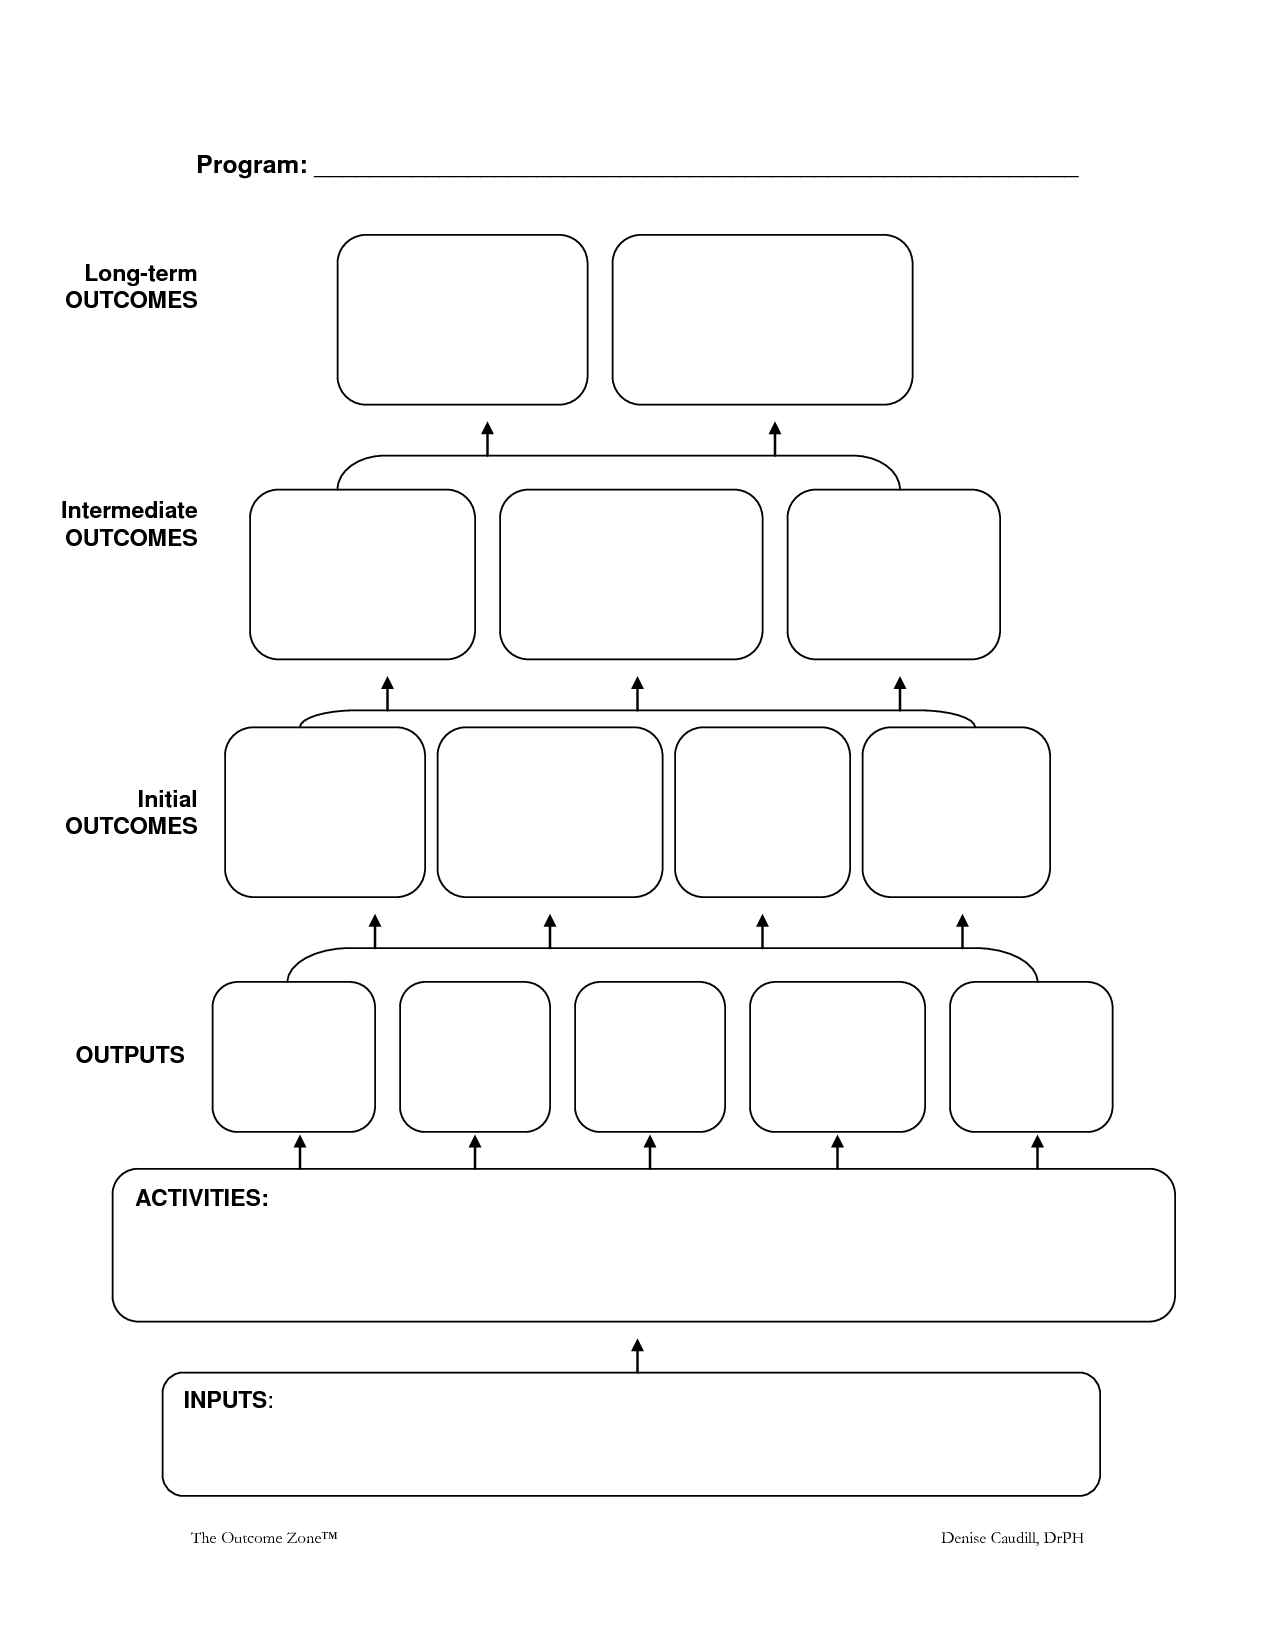 Blank Logic Model Template Check This Useful Article By Going To The Link At Image LovelyCats